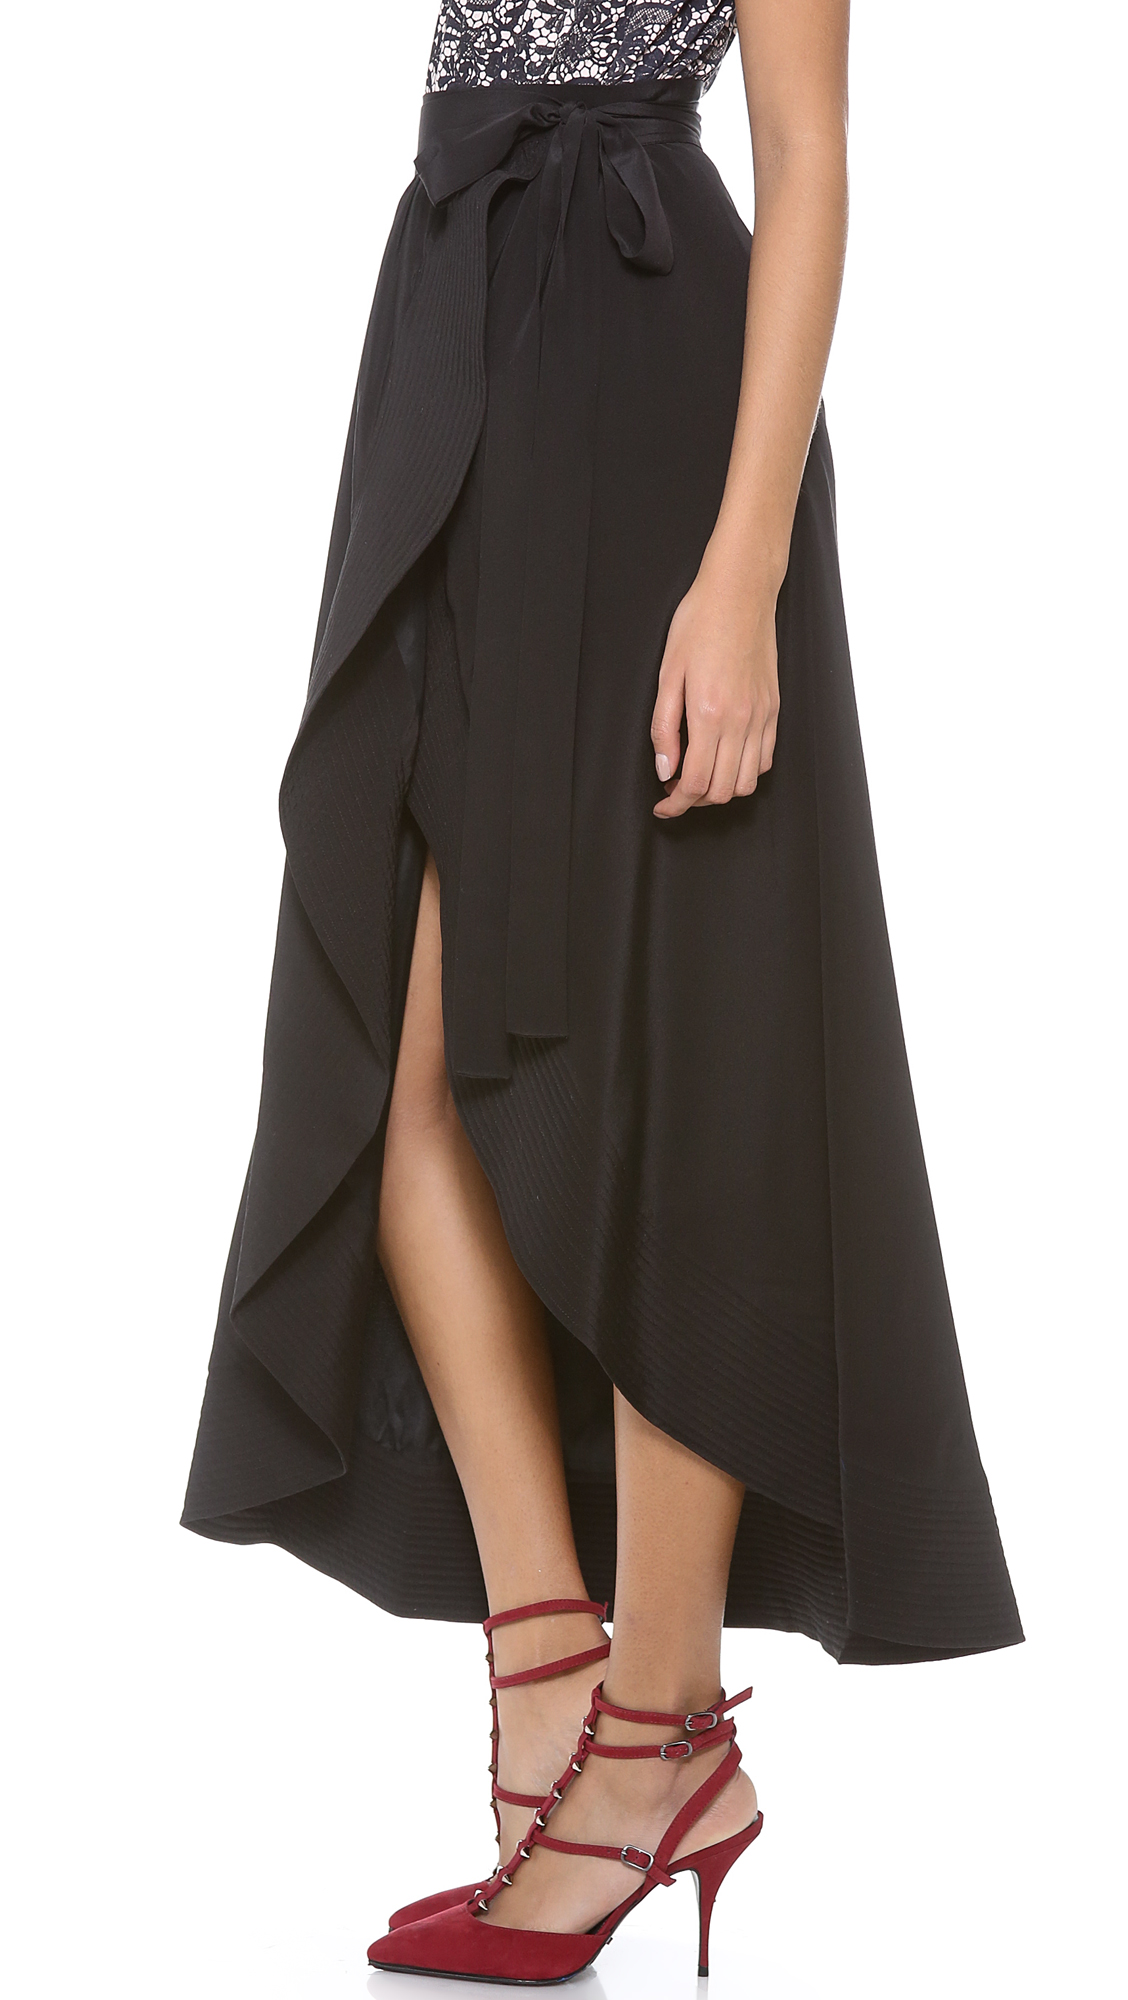 Ponte wrap skirt - Three gathers into waist - Exposed metal zip at back - Mid length Model is 5'7